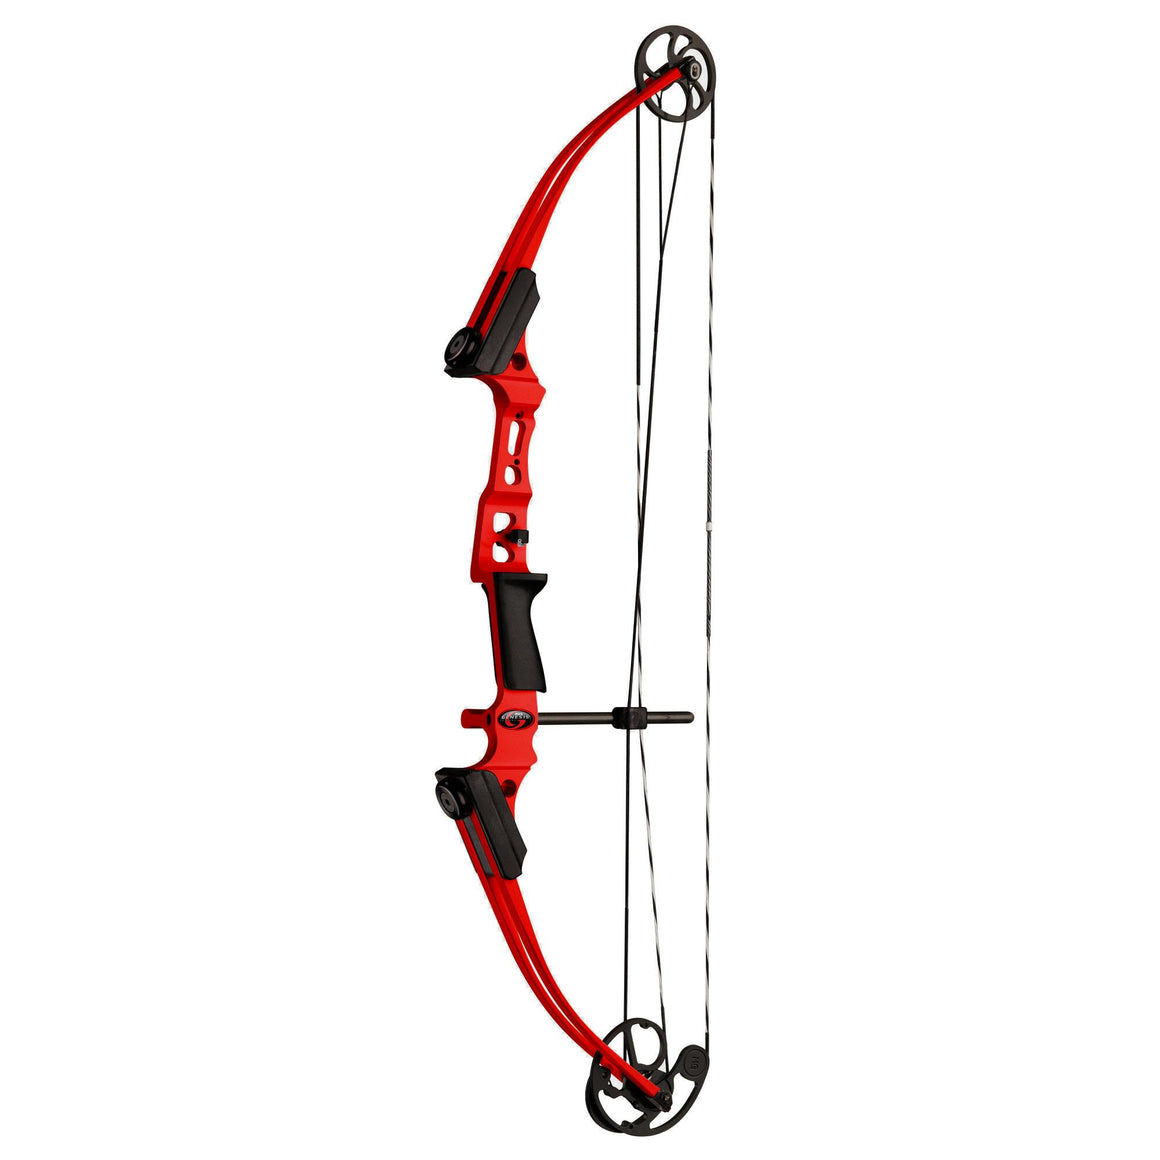 Mini Bow - Right Handed, Red